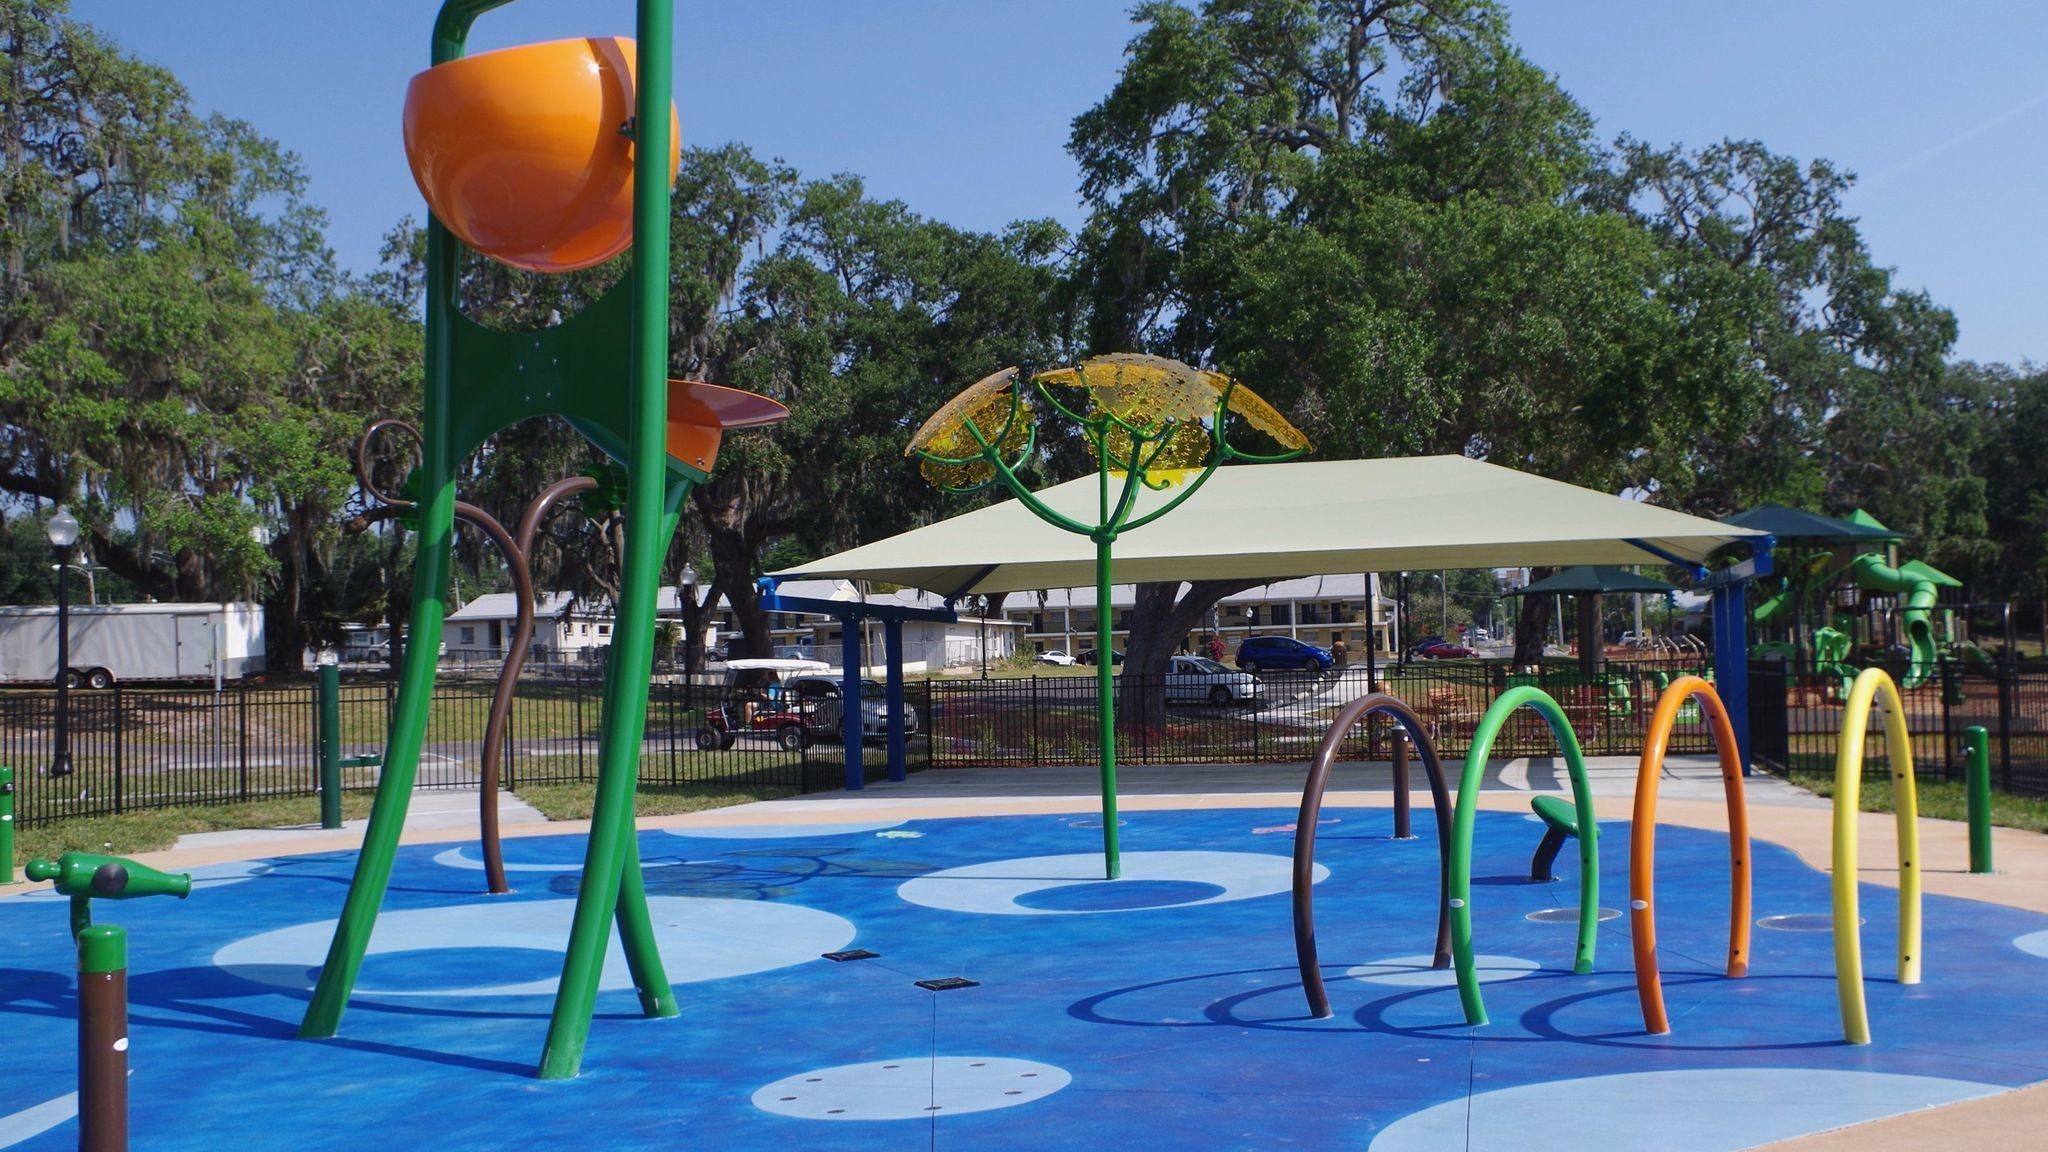 Just In Time For Summer Leesburg To Open Splash Pad Orlando Sentinel